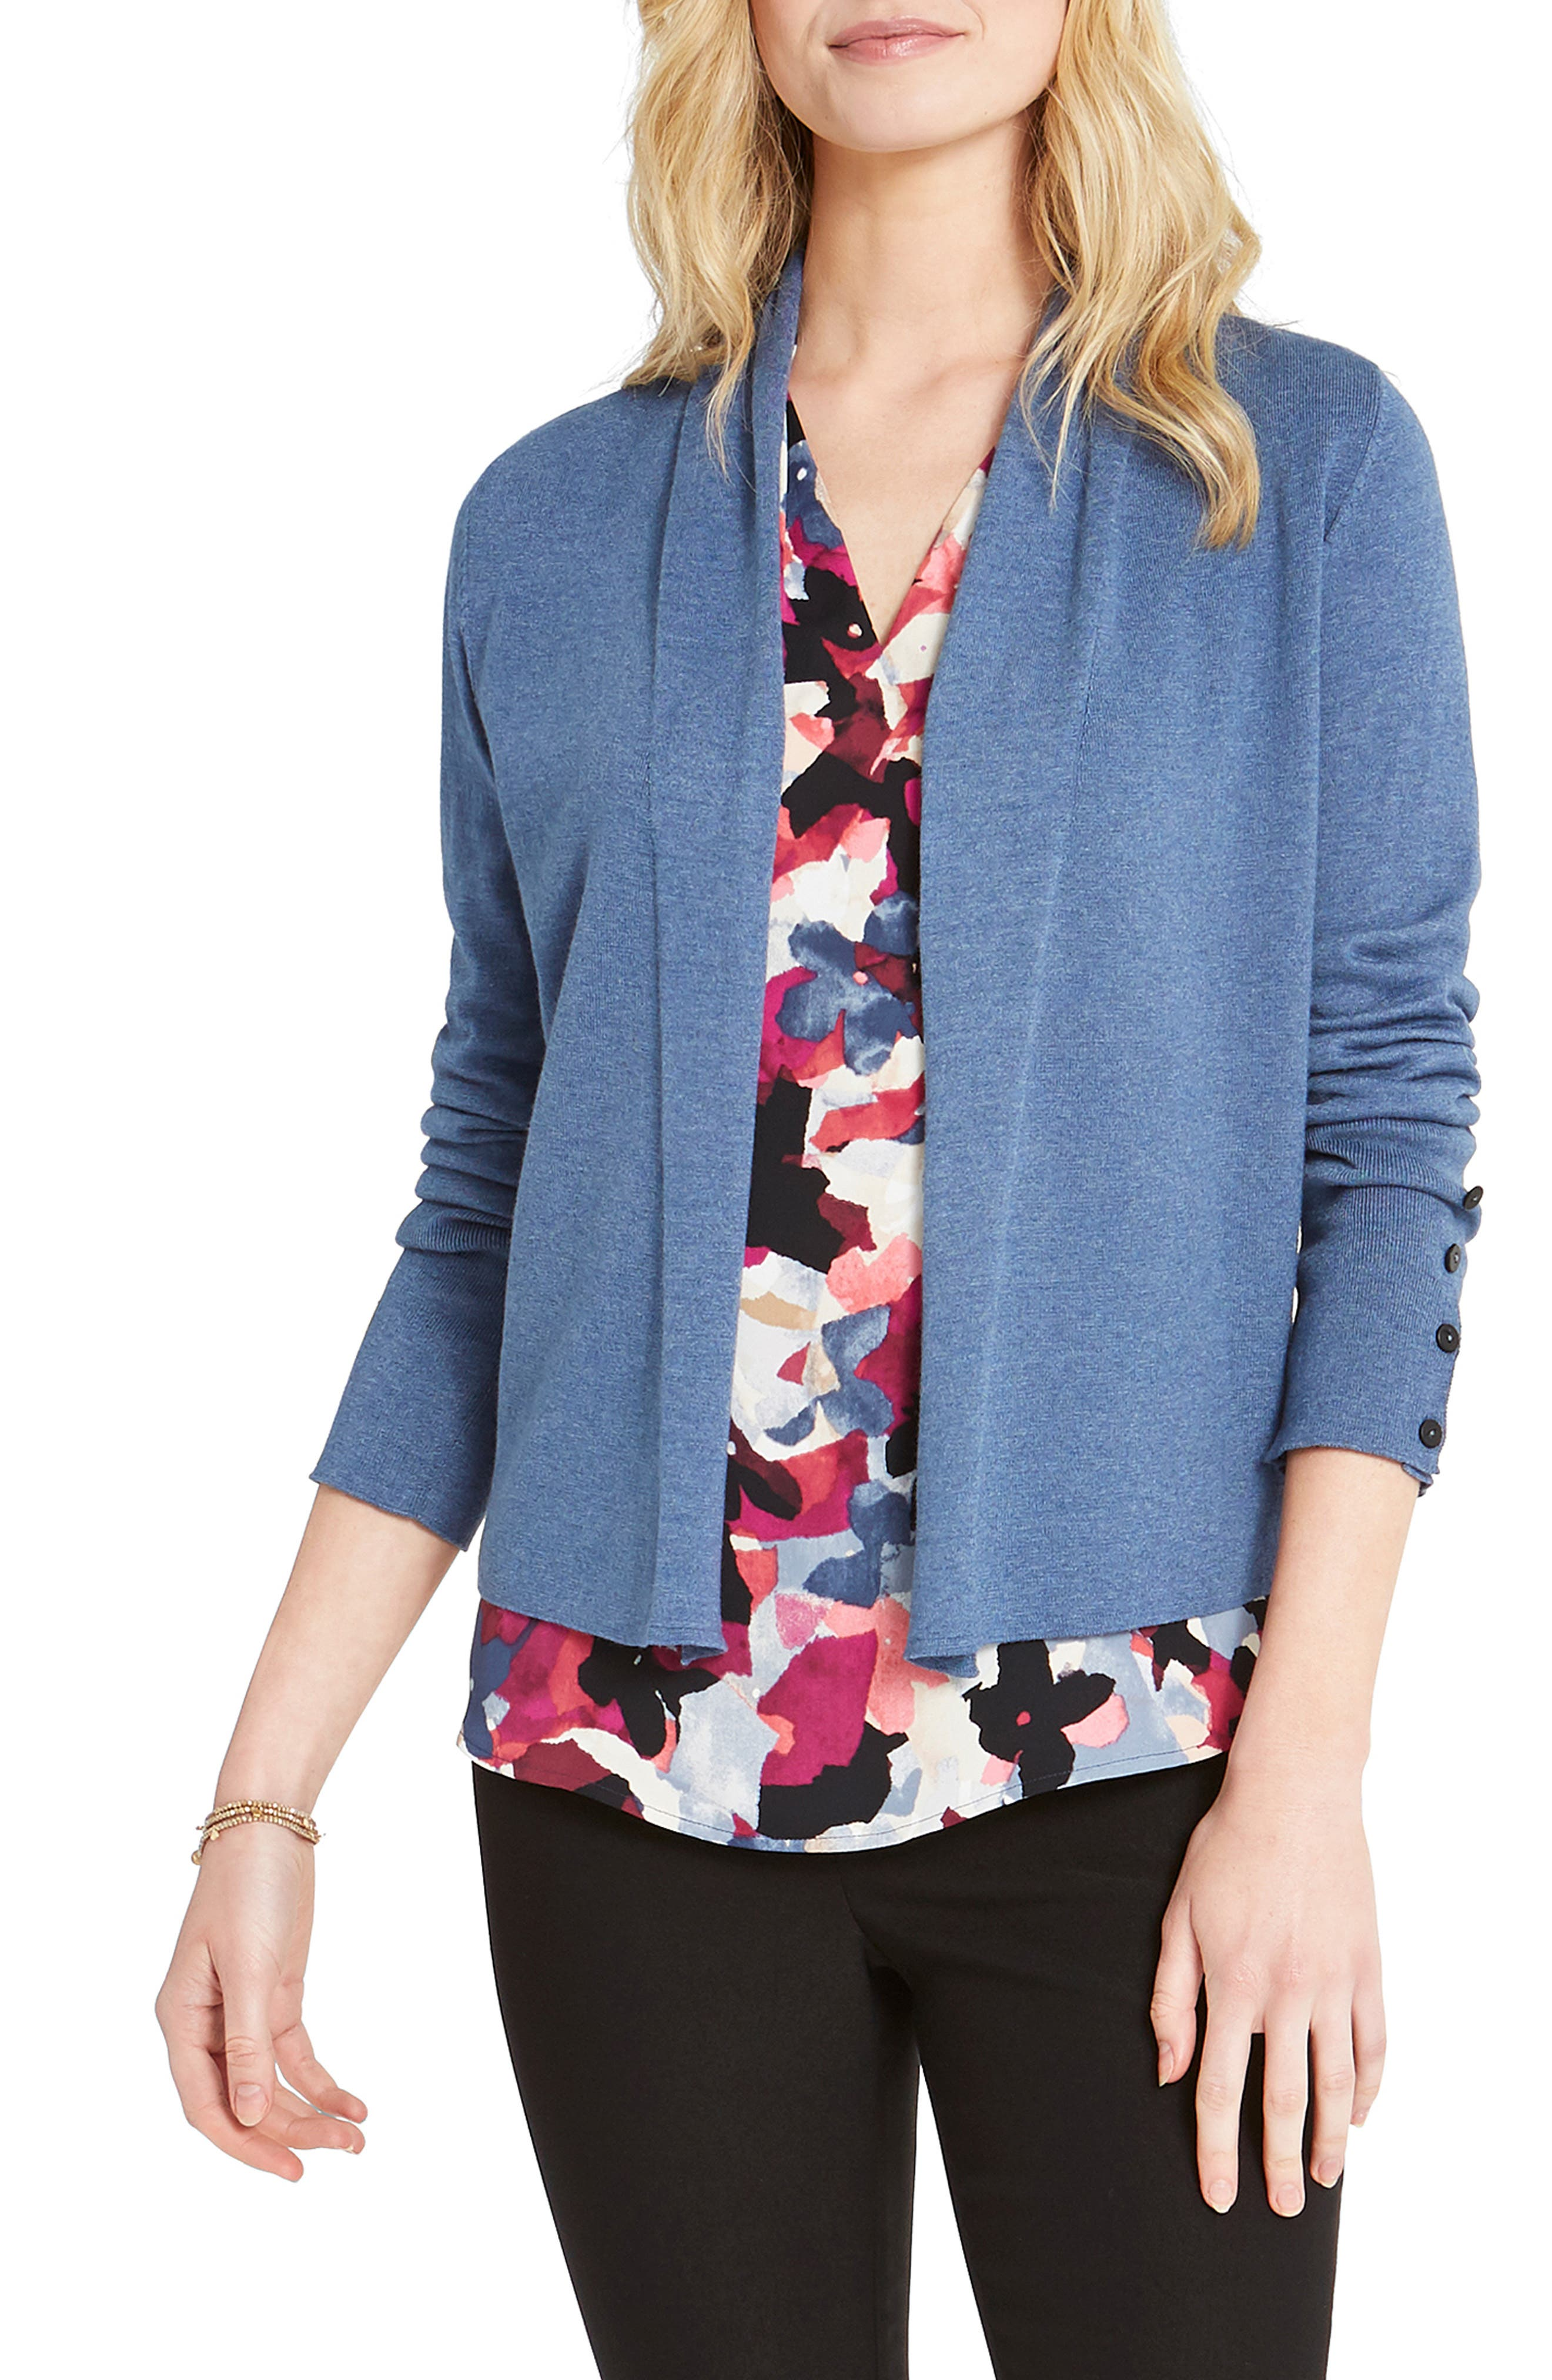 This trusty button-cuff cardi is smart and versatile, taking you from the office to book club with the ladies. Style Name: Nic+Zoe Book Club Open Cardigan (Regular & Petite). Style Number: 6051401. Available in stores.